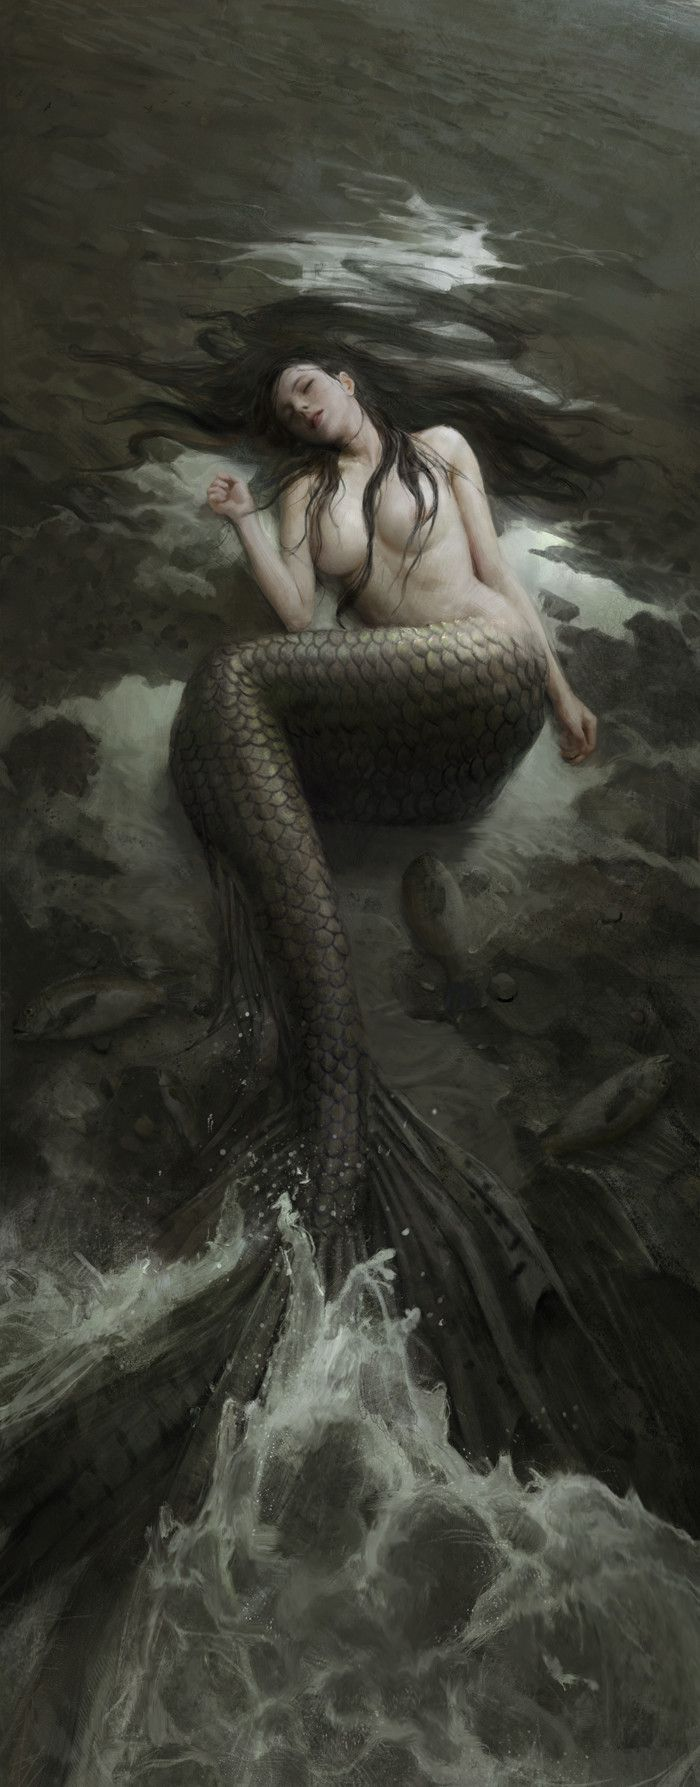 Mermaid by Sangsu Jeong